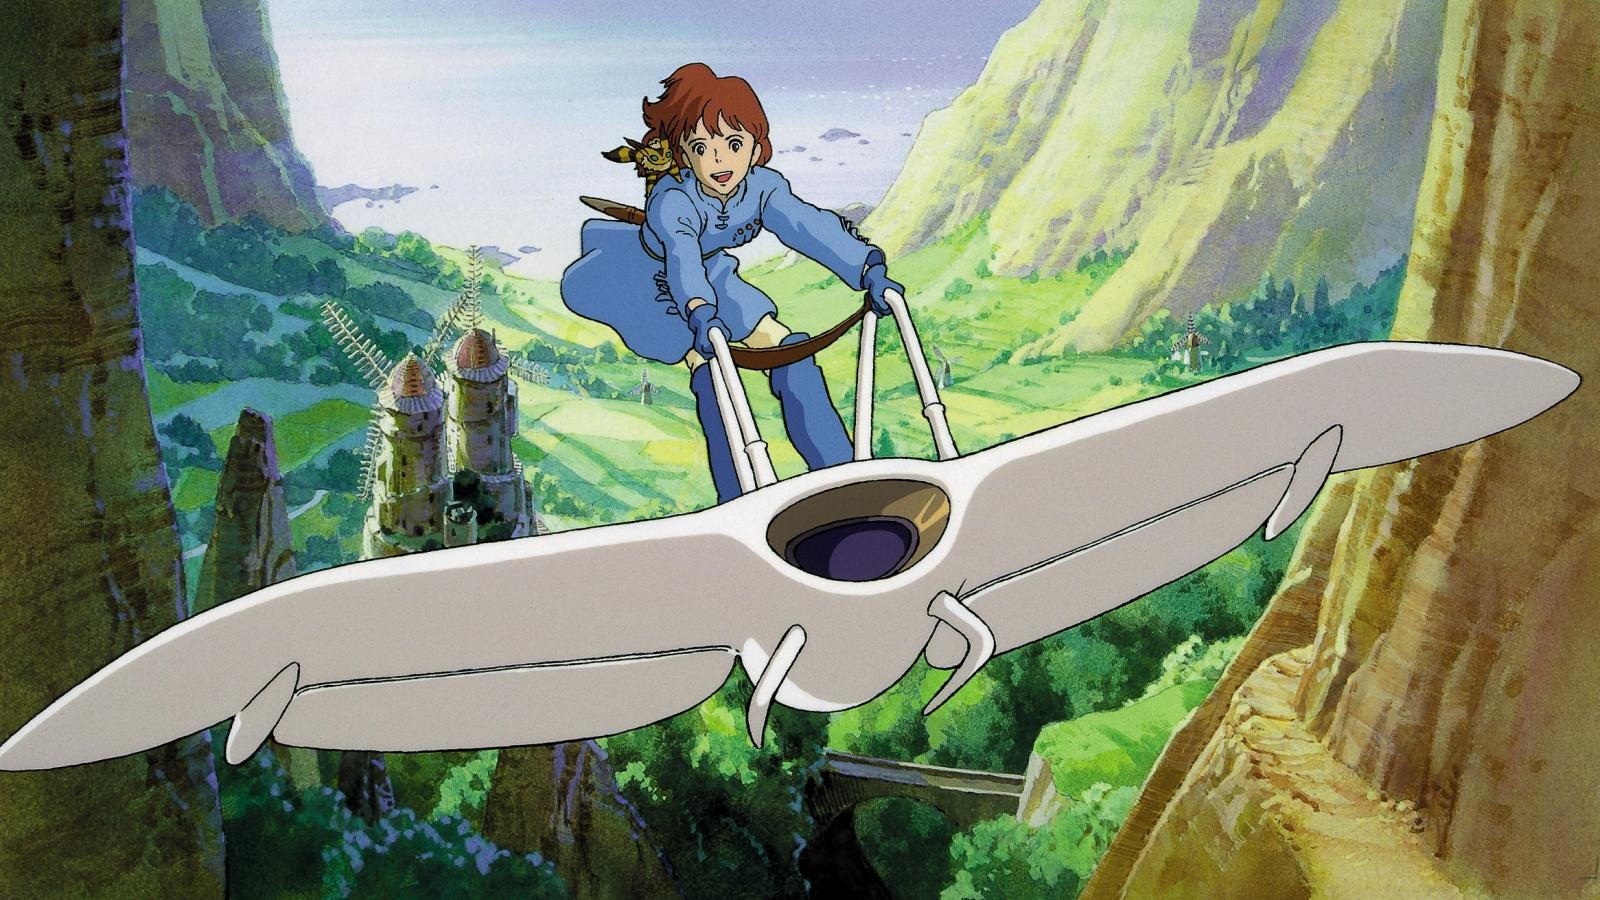 High resolution Nausicaa Of The Valley Of The Wind hd 1600x900 background ID:315376 for PC